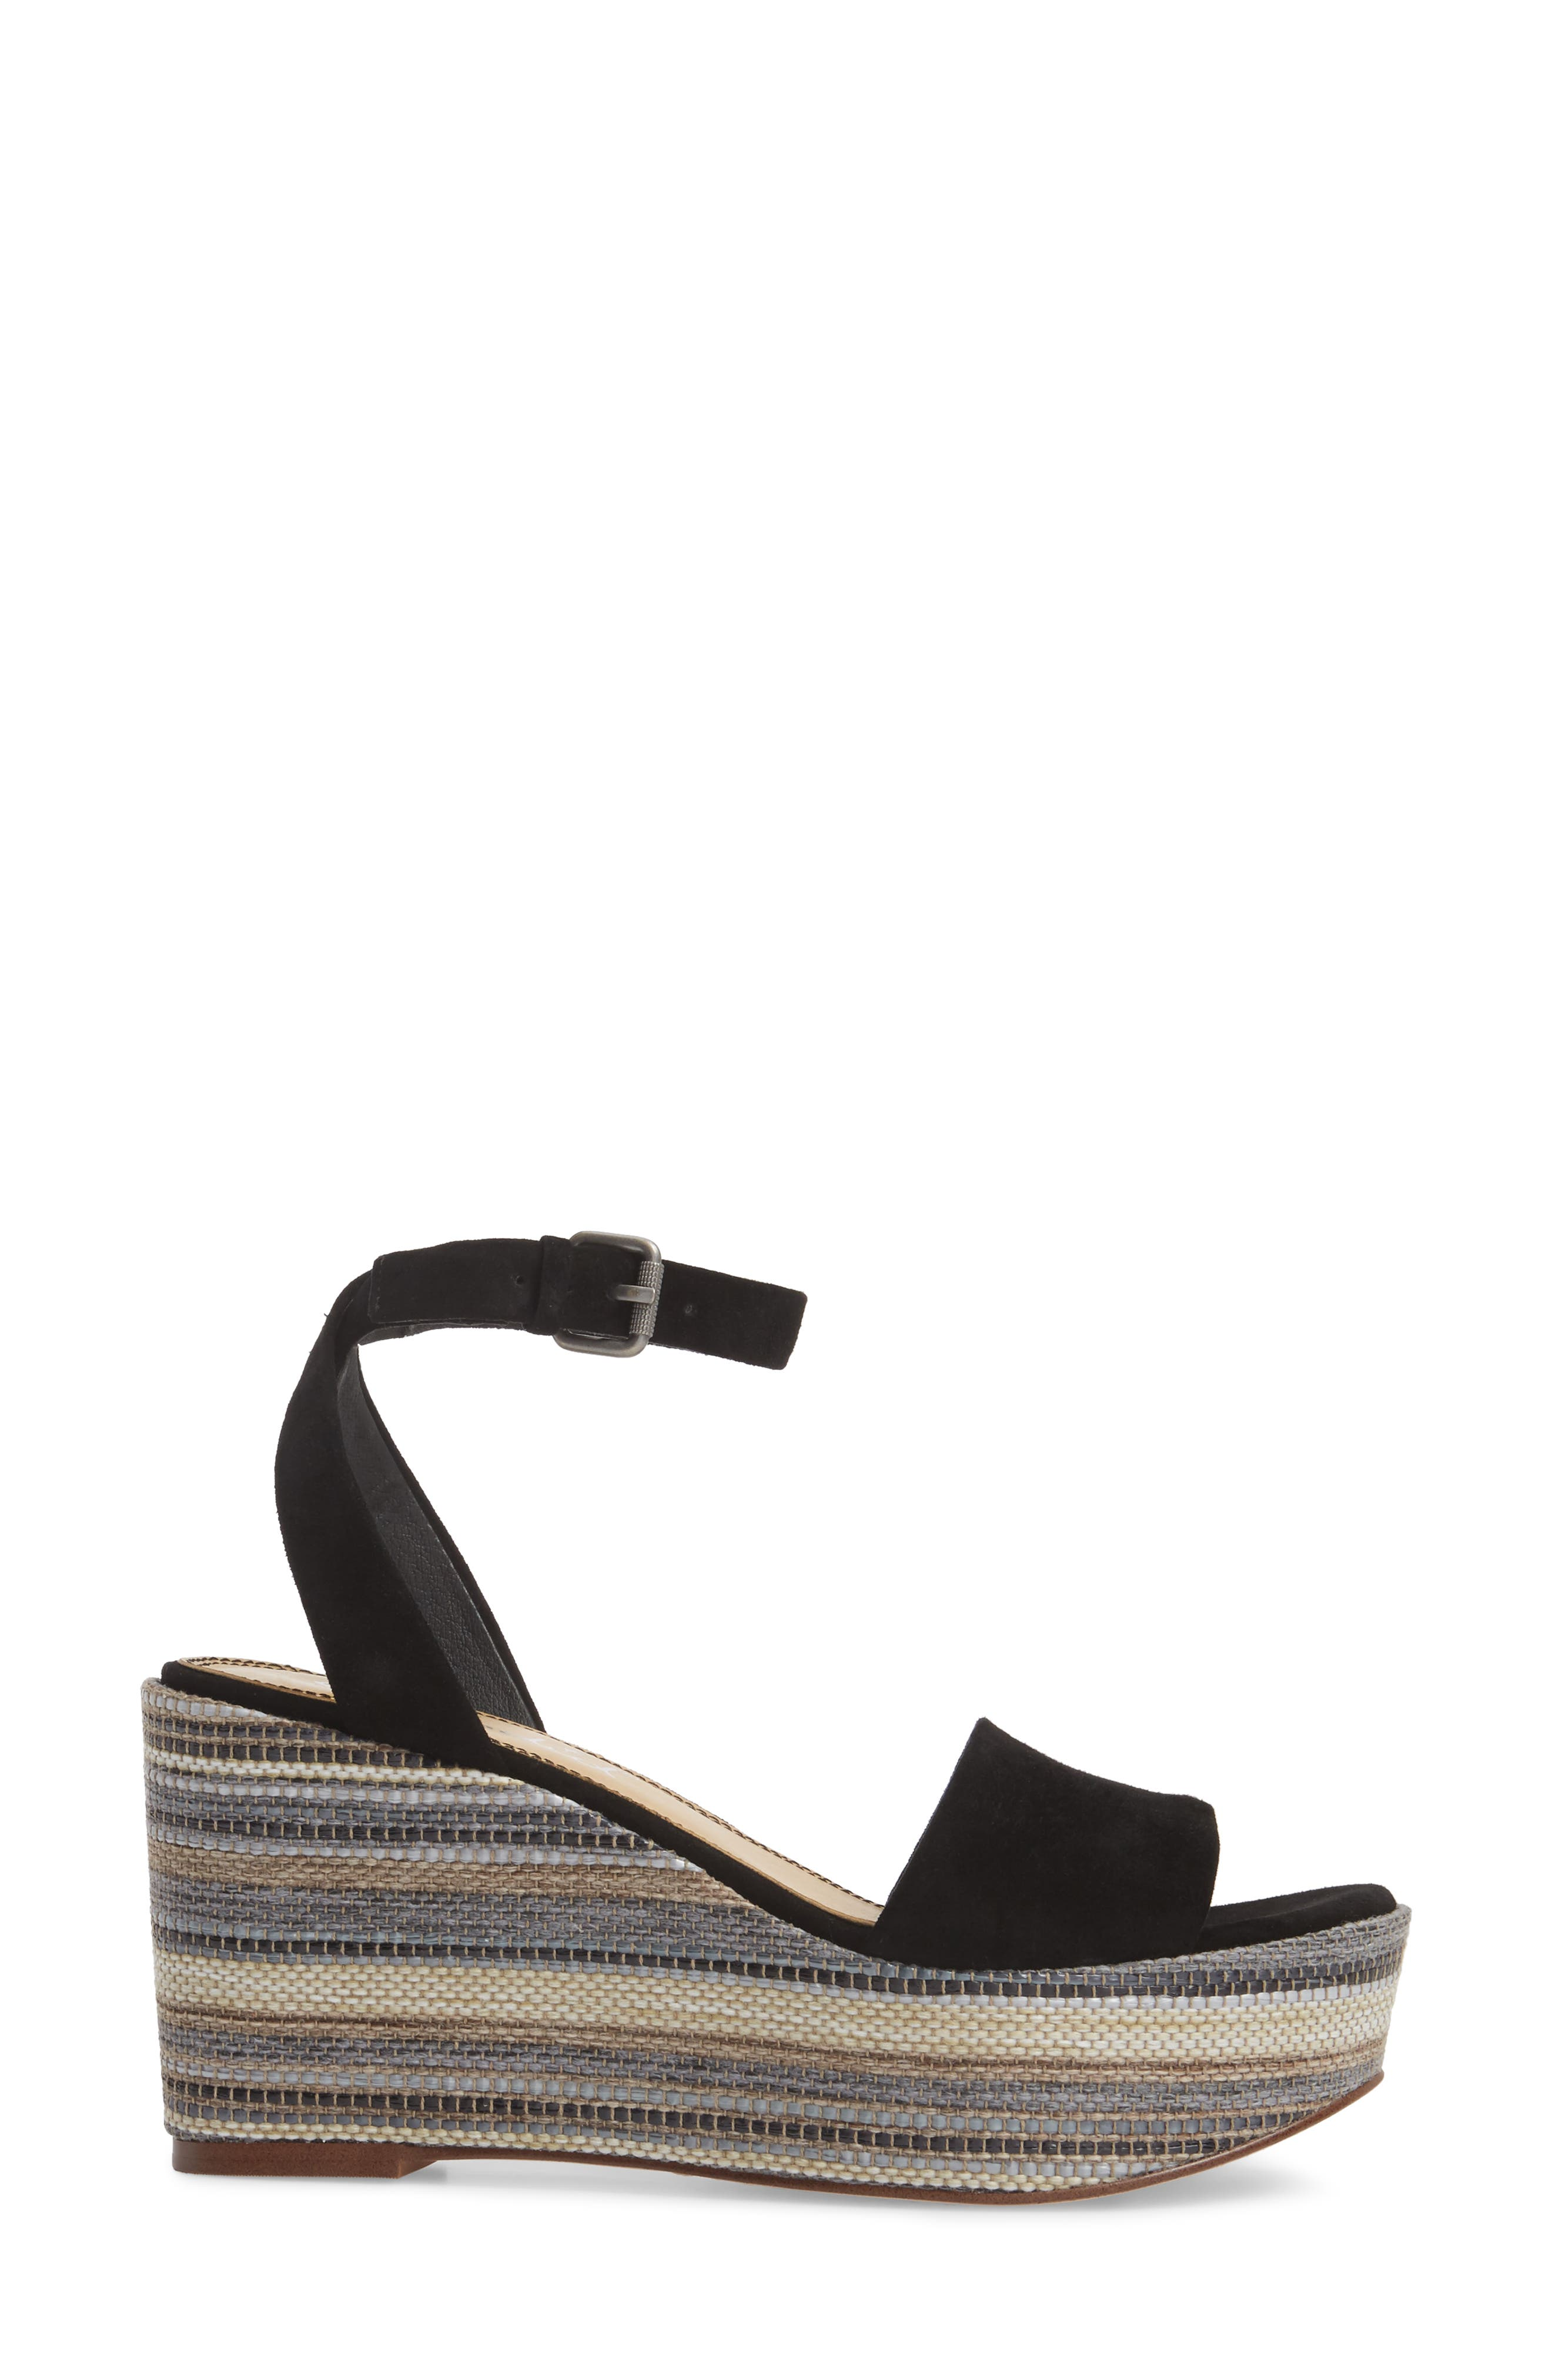 Felix Platform Wedge Sandal,                             Alternate thumbnail 3, color,                             Black Multi Suede